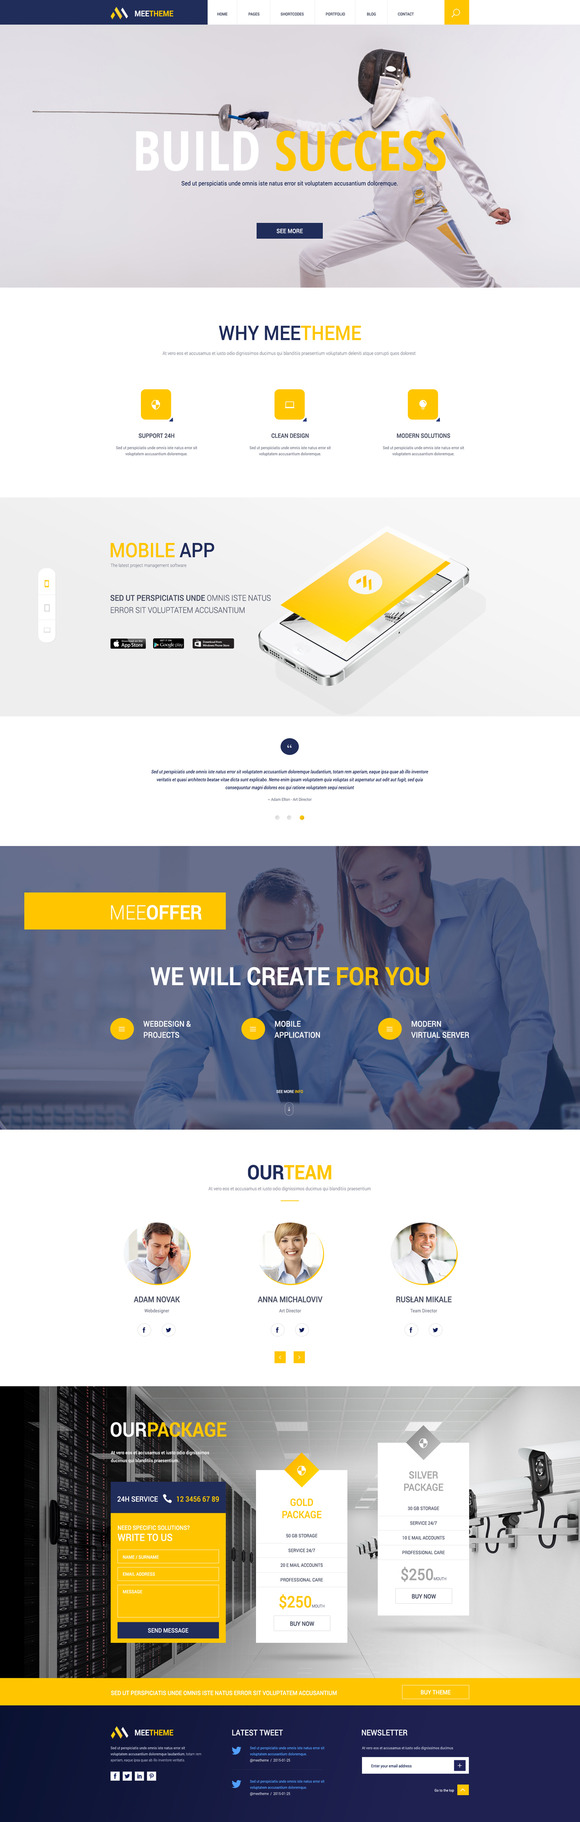 MeeTheme - 2 OnePage PSD $2!!!! - Websites - 1